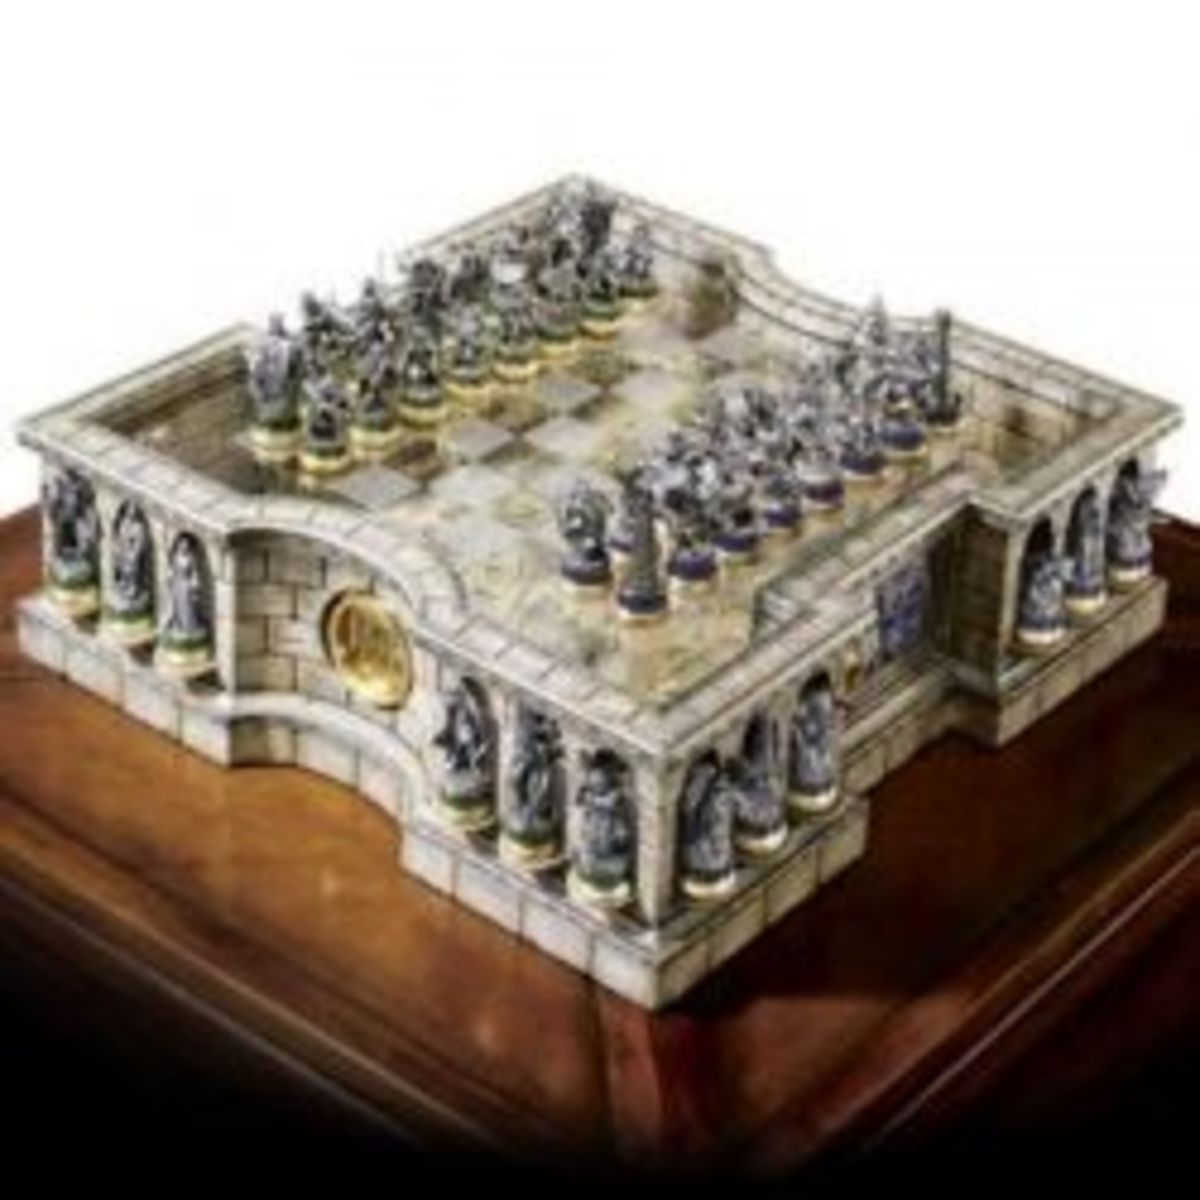 lord-of-the-rings-collectors-chess-set